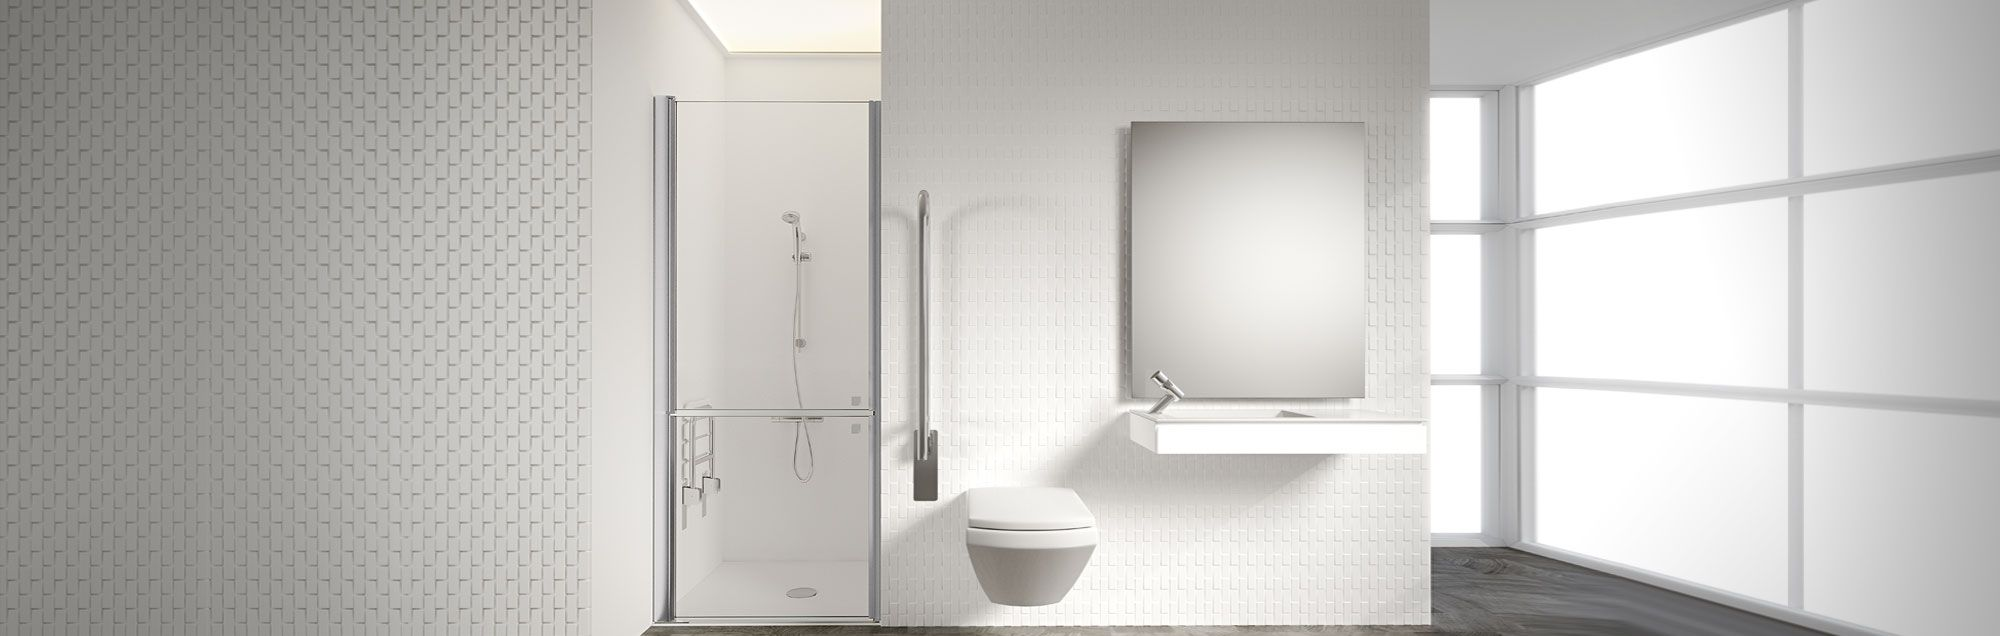 PROFILTEK PMR reduced mobility persons' Collection made to measure bathroom enclosures